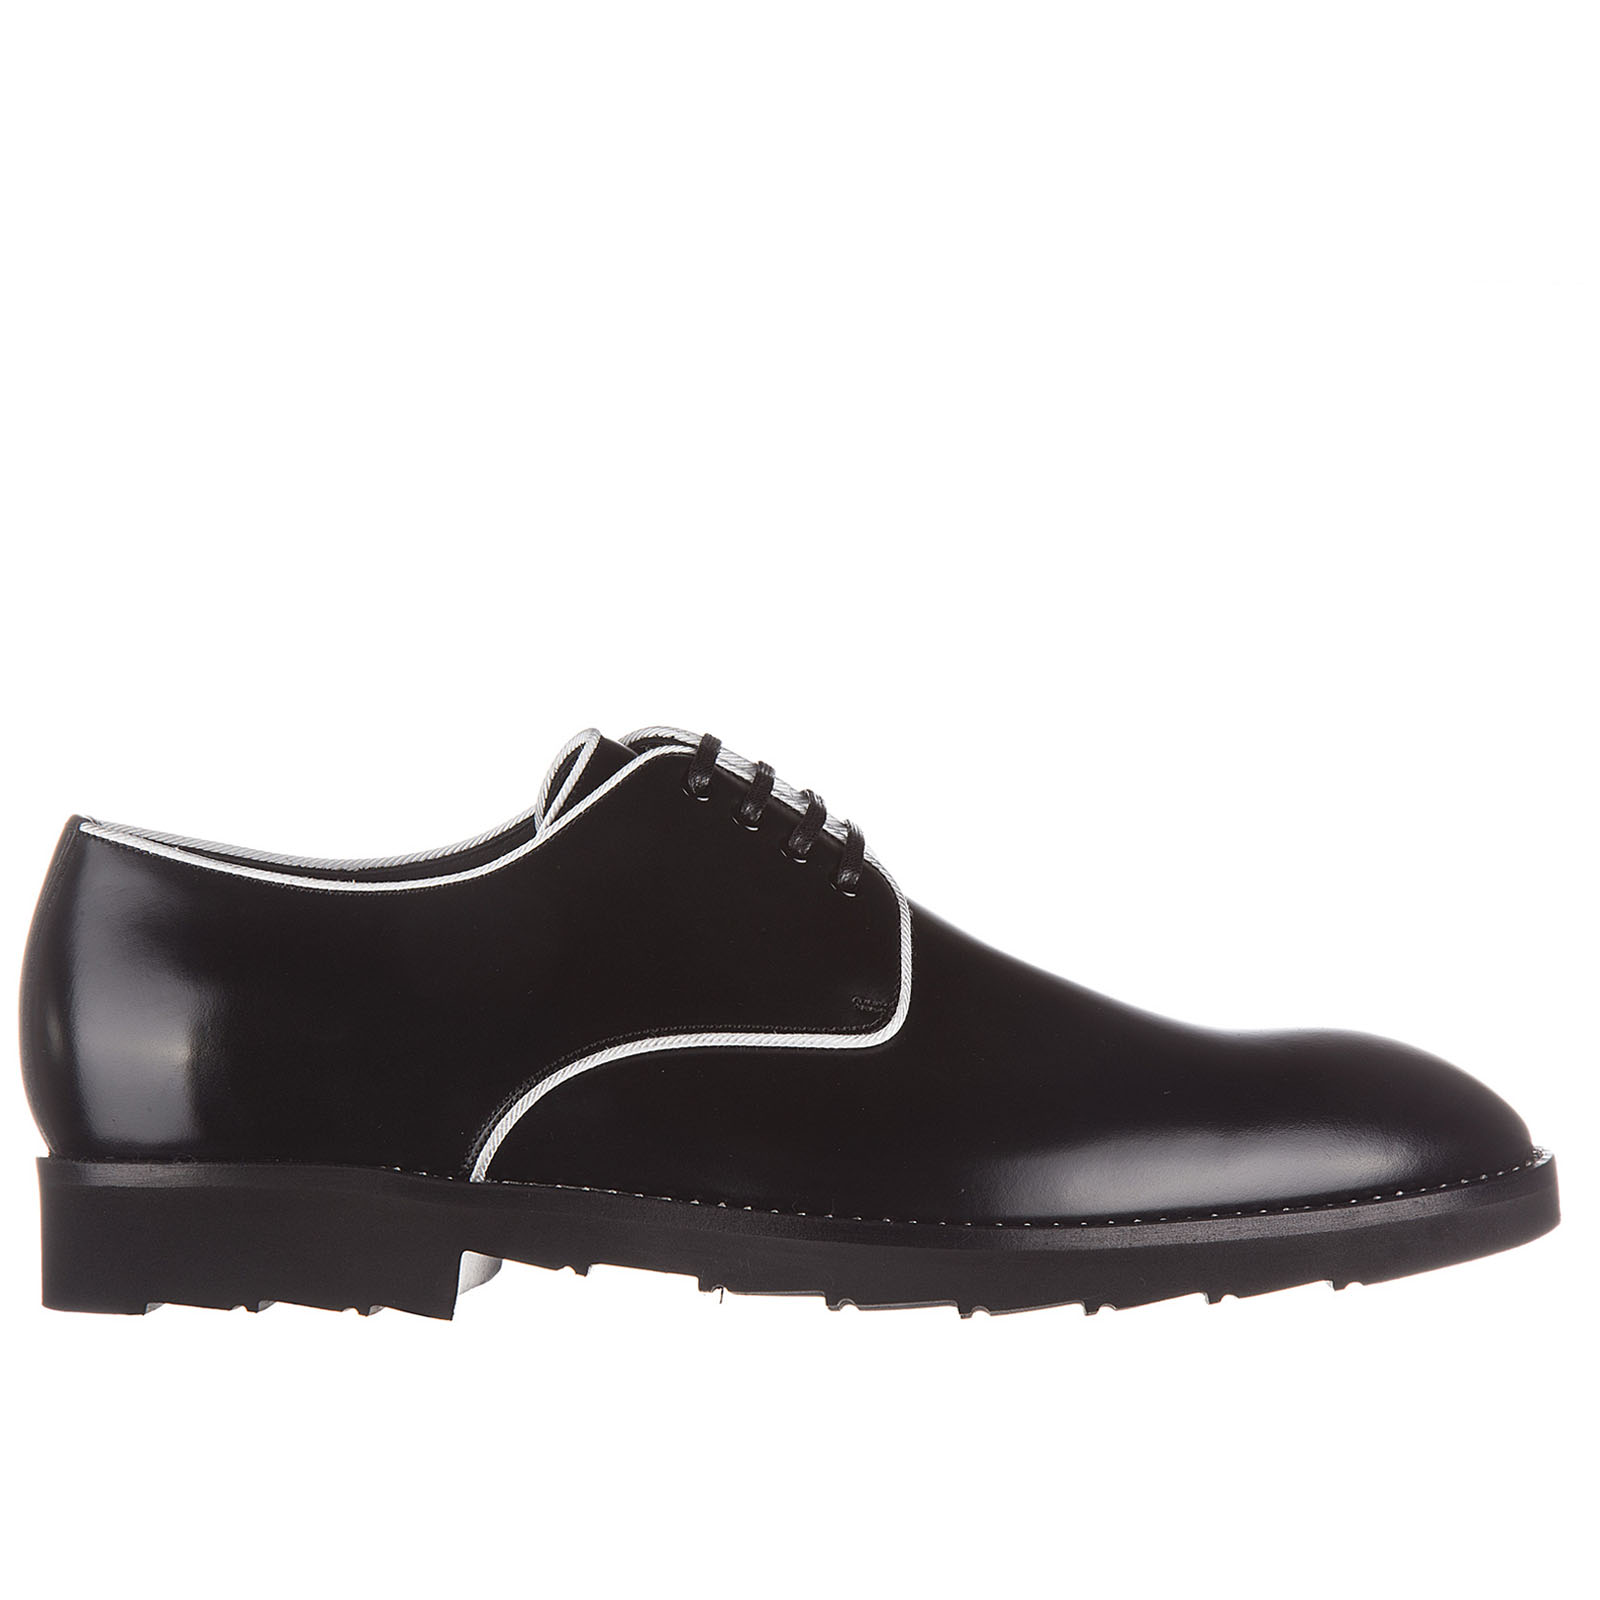 Men's classic leather lace up laced formal shoes derby correggio